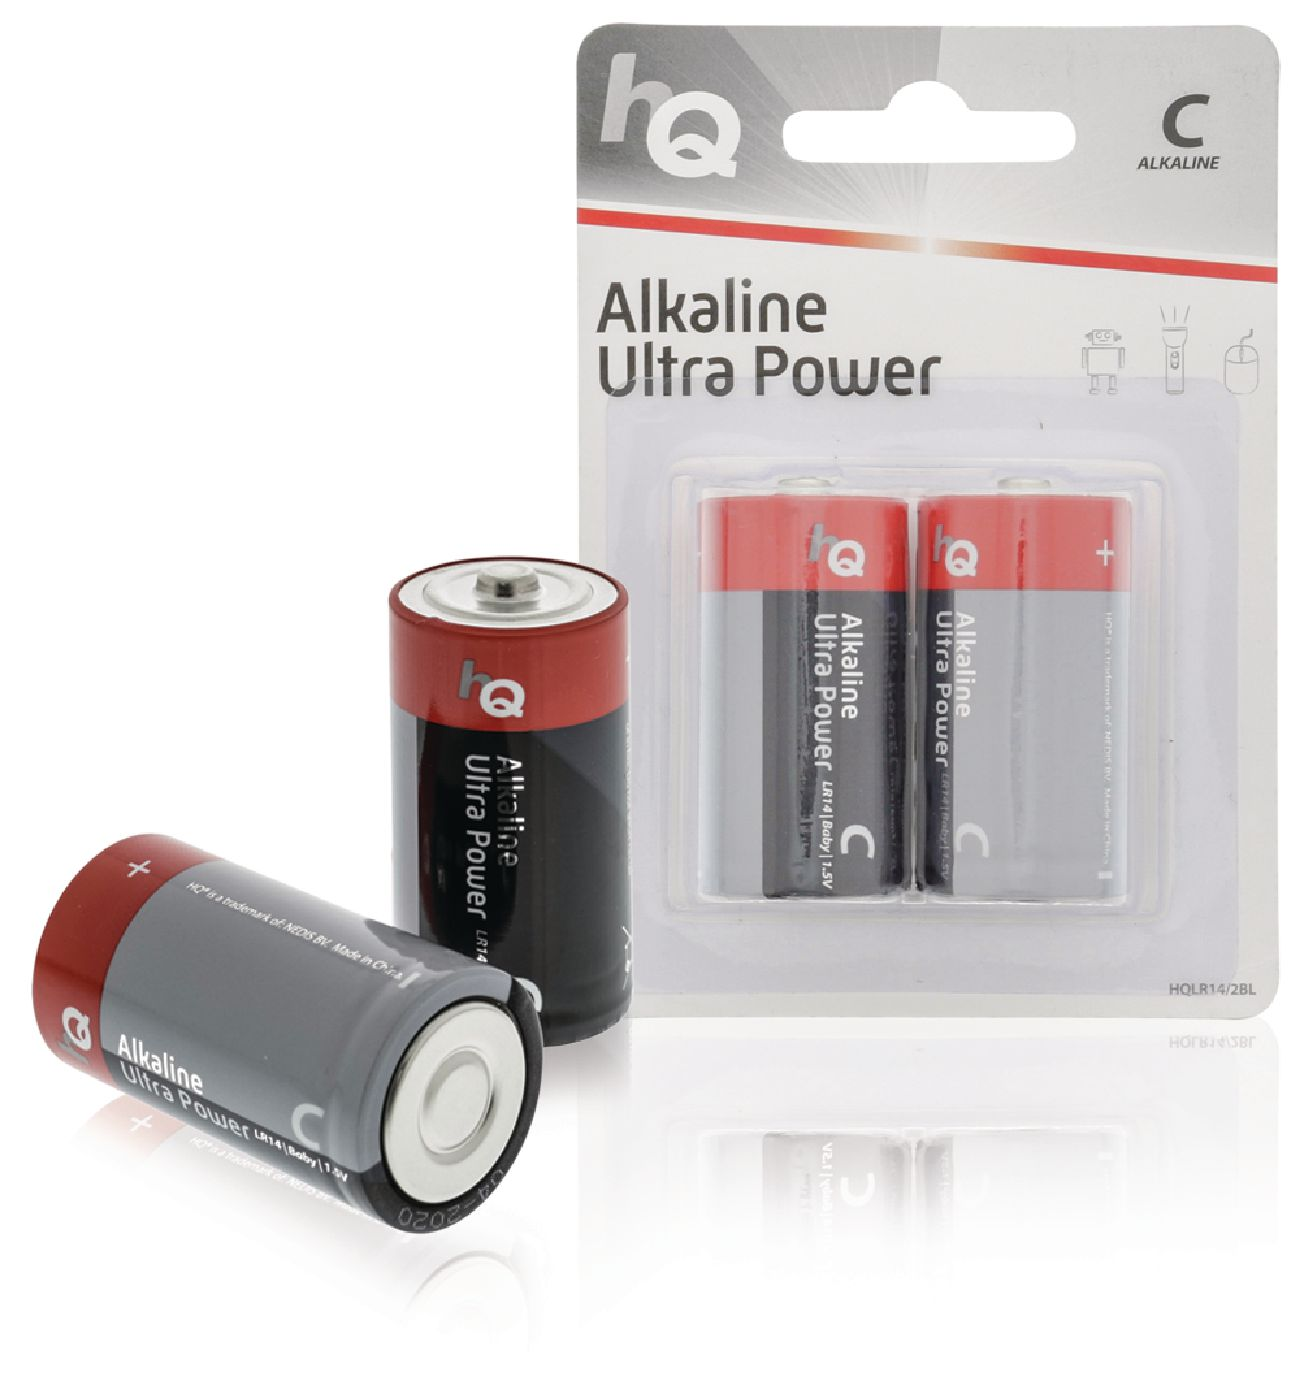 Alkalická baterie HQ Ultra Power LR14 1.5 V, 2ks, HQLR14/2BL